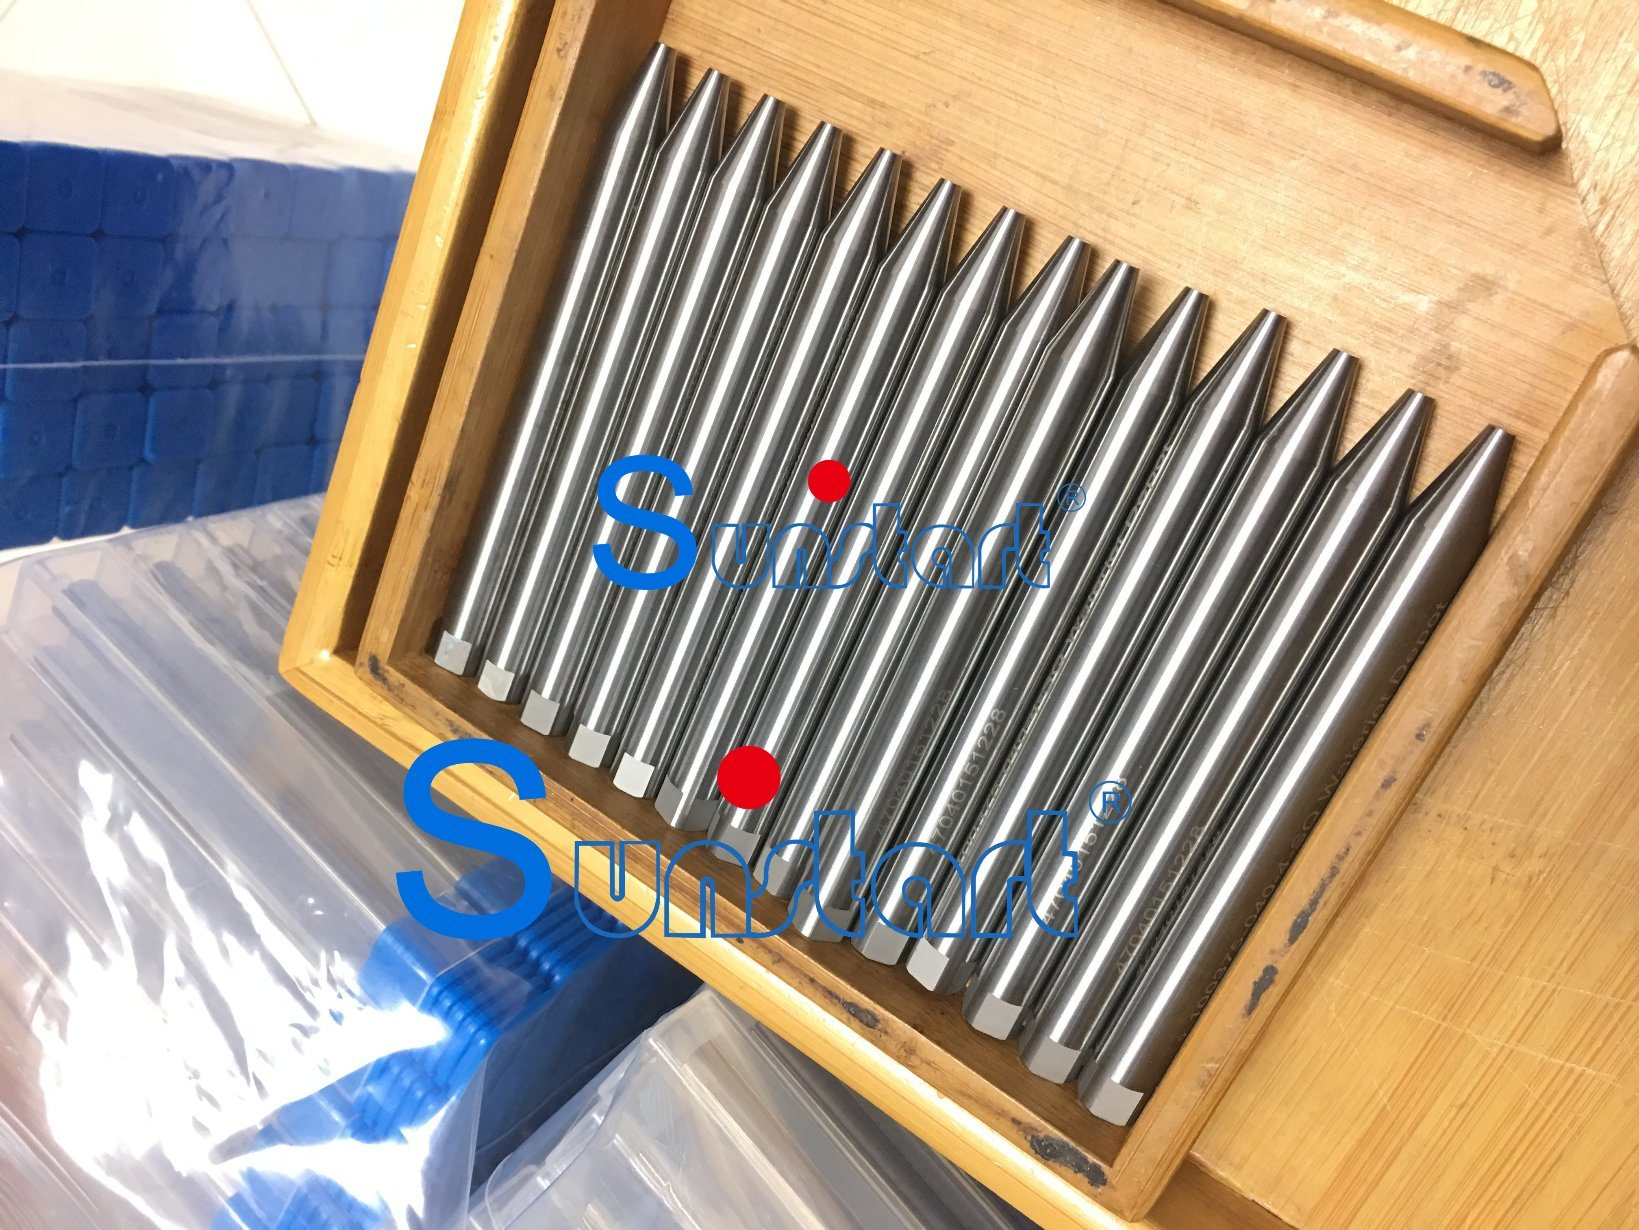 [Hot Item] Waterjet Mixing Tube Spare Parts for Omax Waterjet Standard  Machine